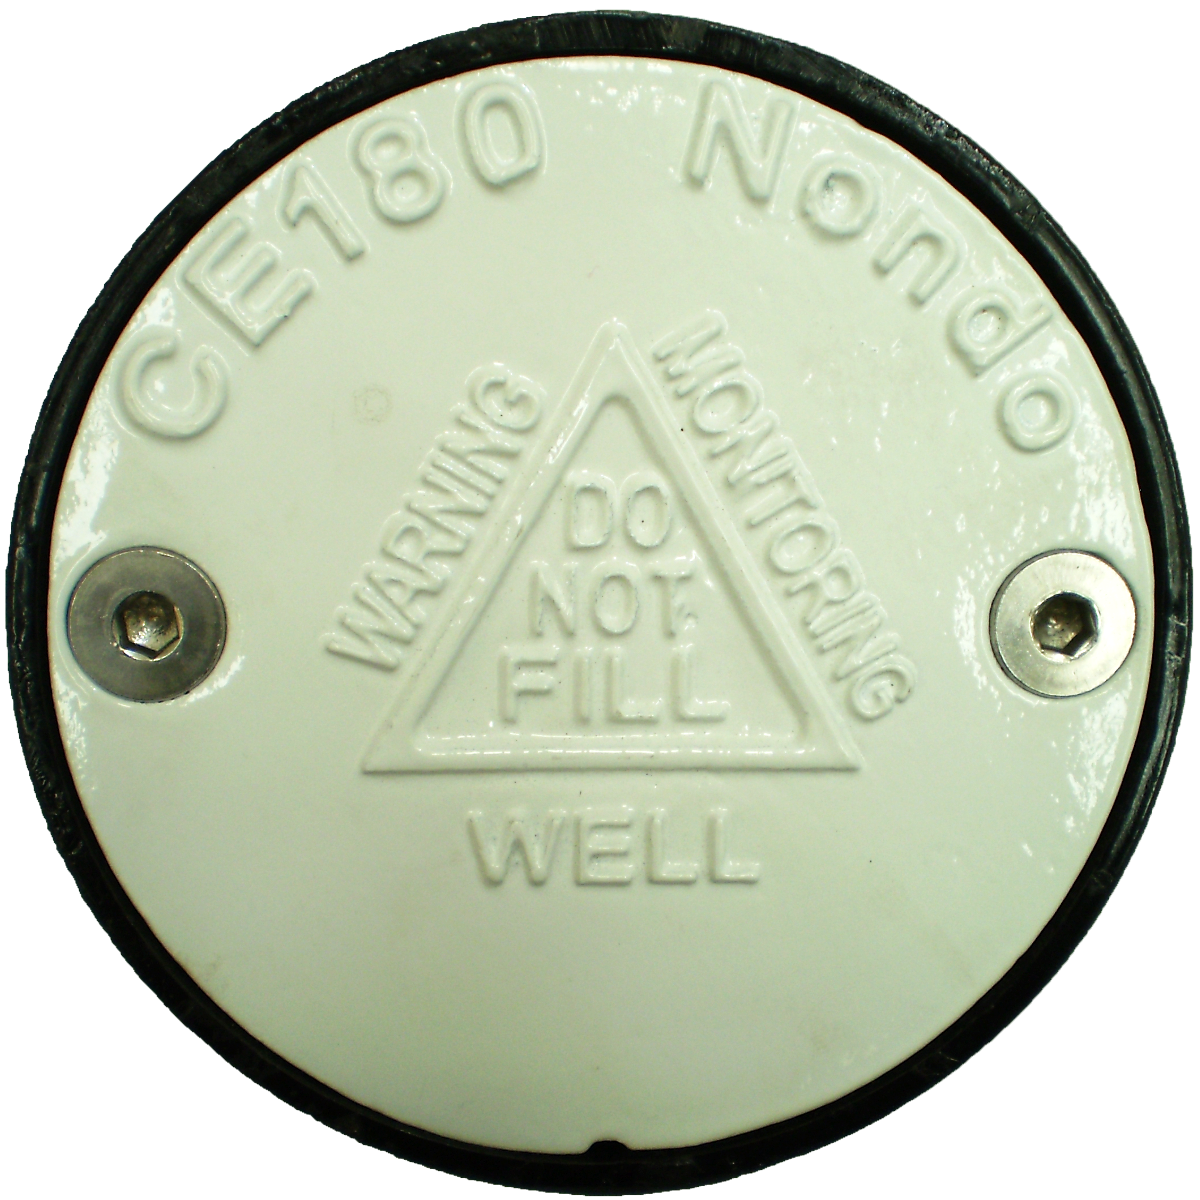 CE180 Nondo Well Cover for Monitoring Wells Fieldtech Solutions